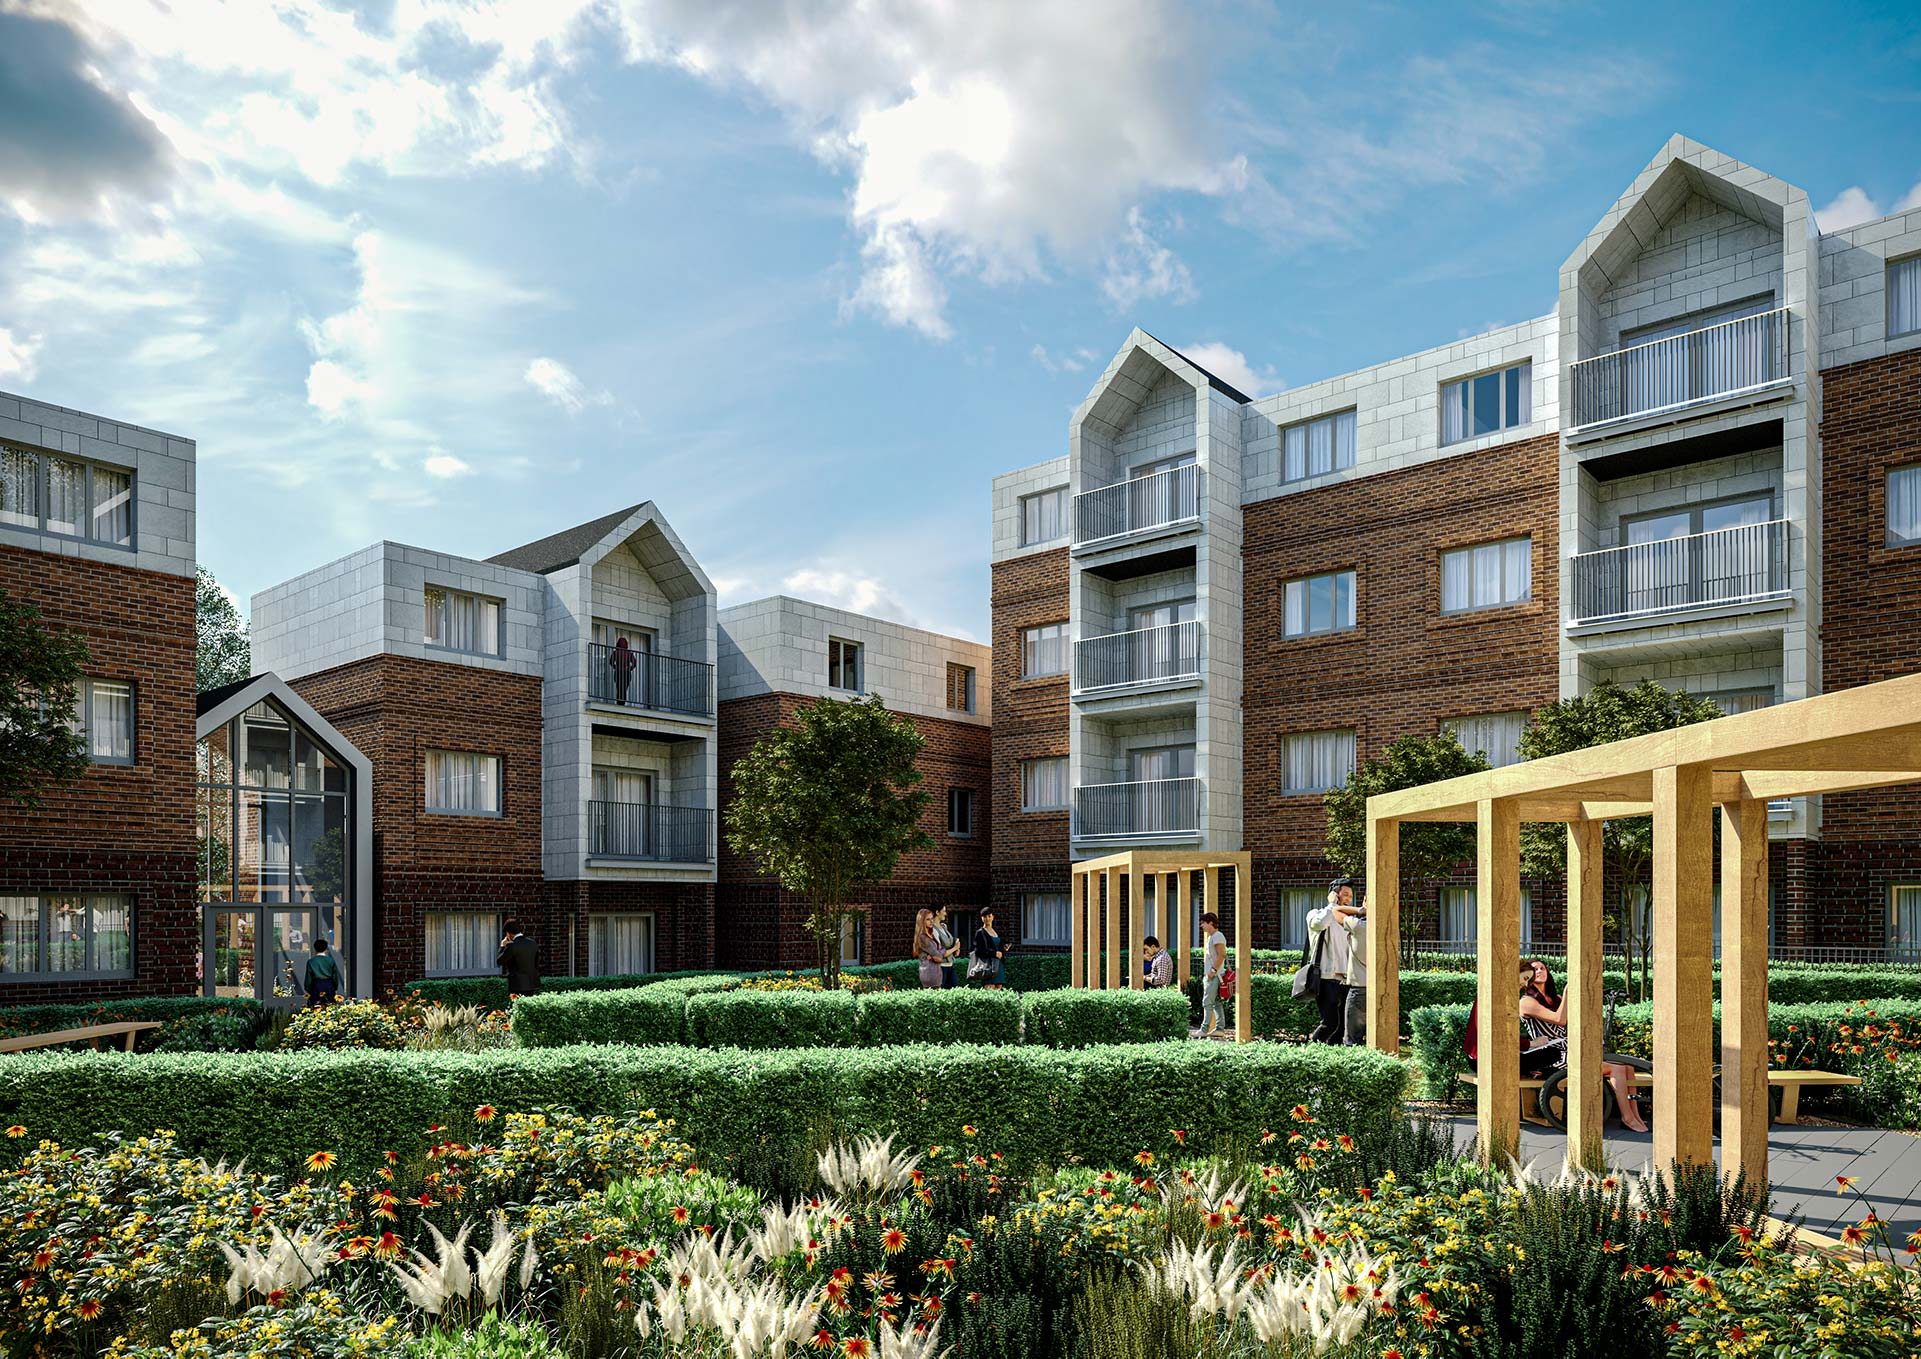 Architectural Visualisation of Flats